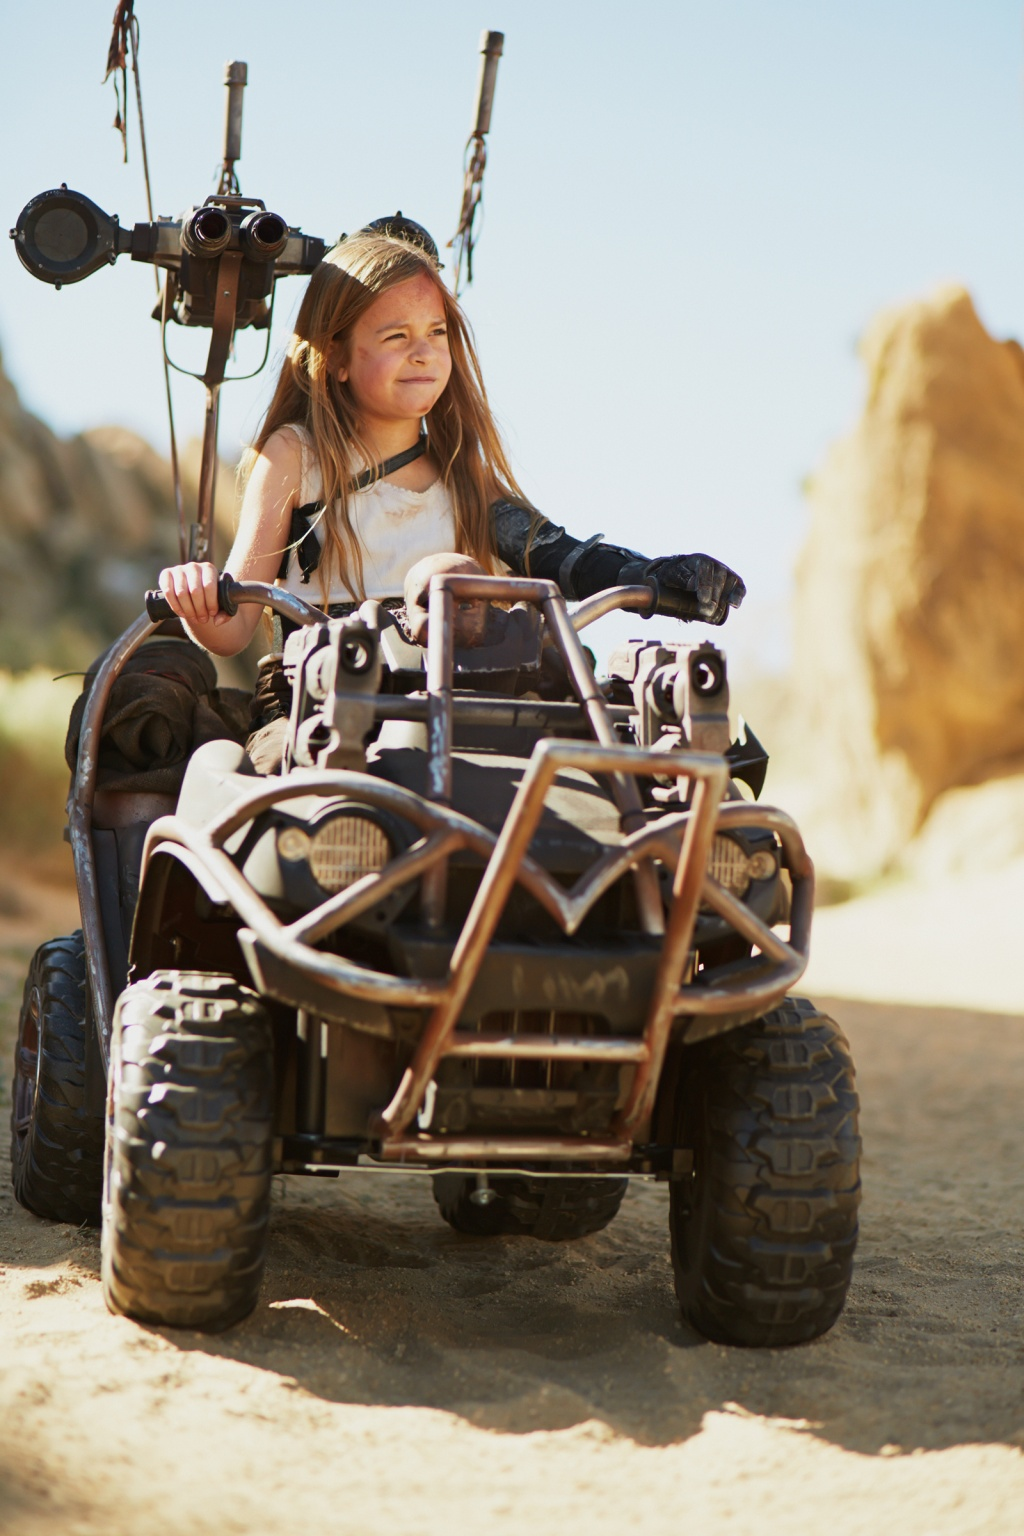 iljp_mad_max_power_wheels_add2